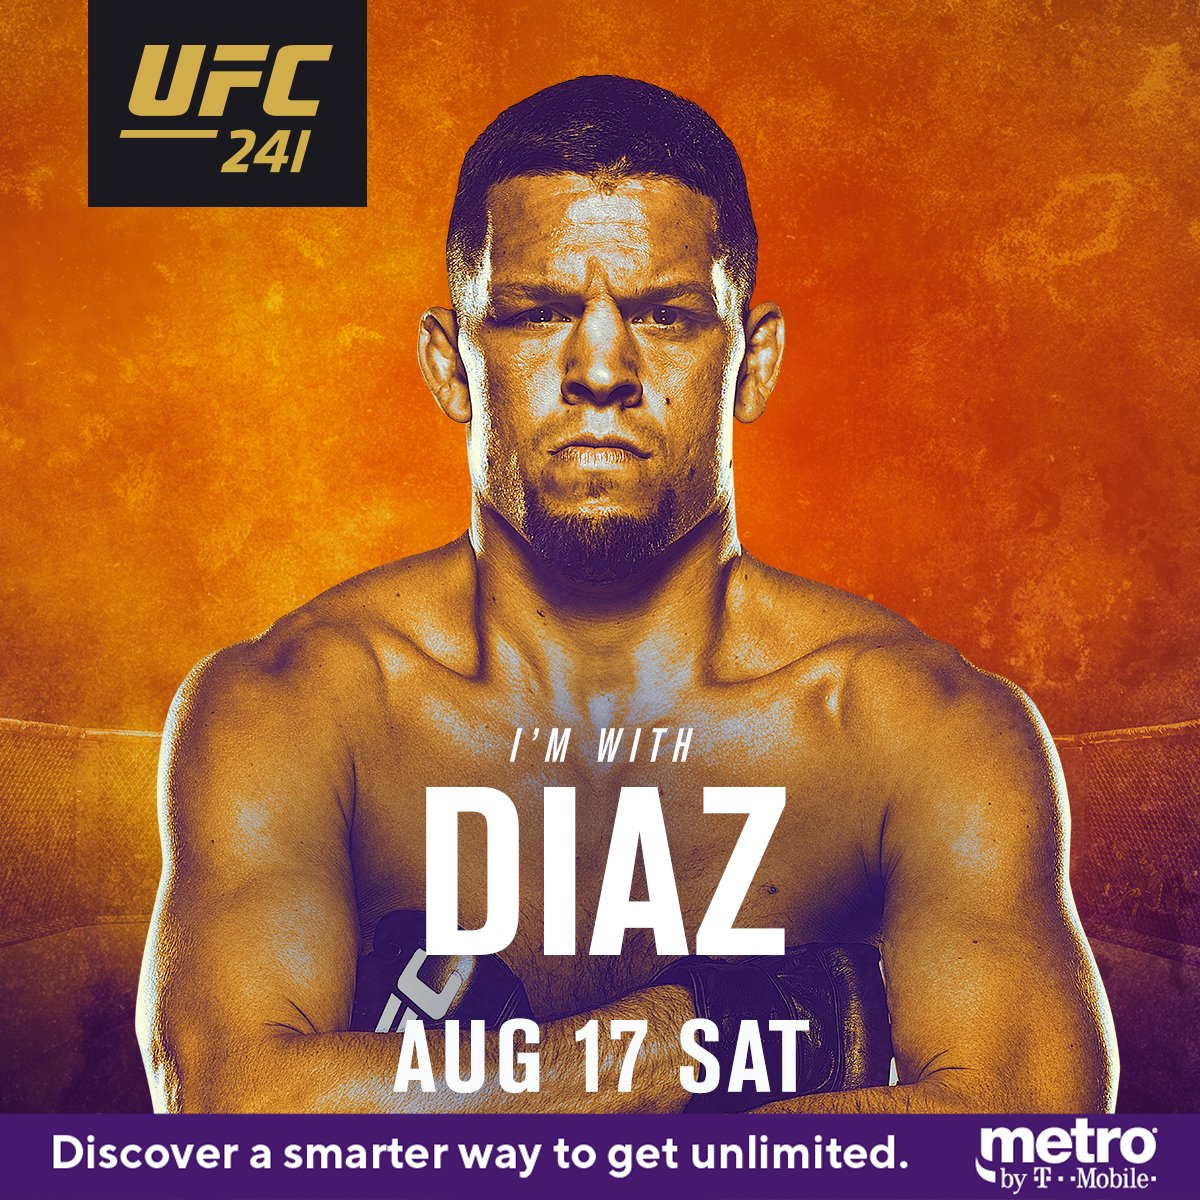 The day has arrived! 😤  RT if you're w/ 🇺🇸 @NateDiaz209 at #UFC241 | Tonight | LIVE on ESPN+ ➡️ https://bit.ly/2MoR5sr  @MetroByTMobile